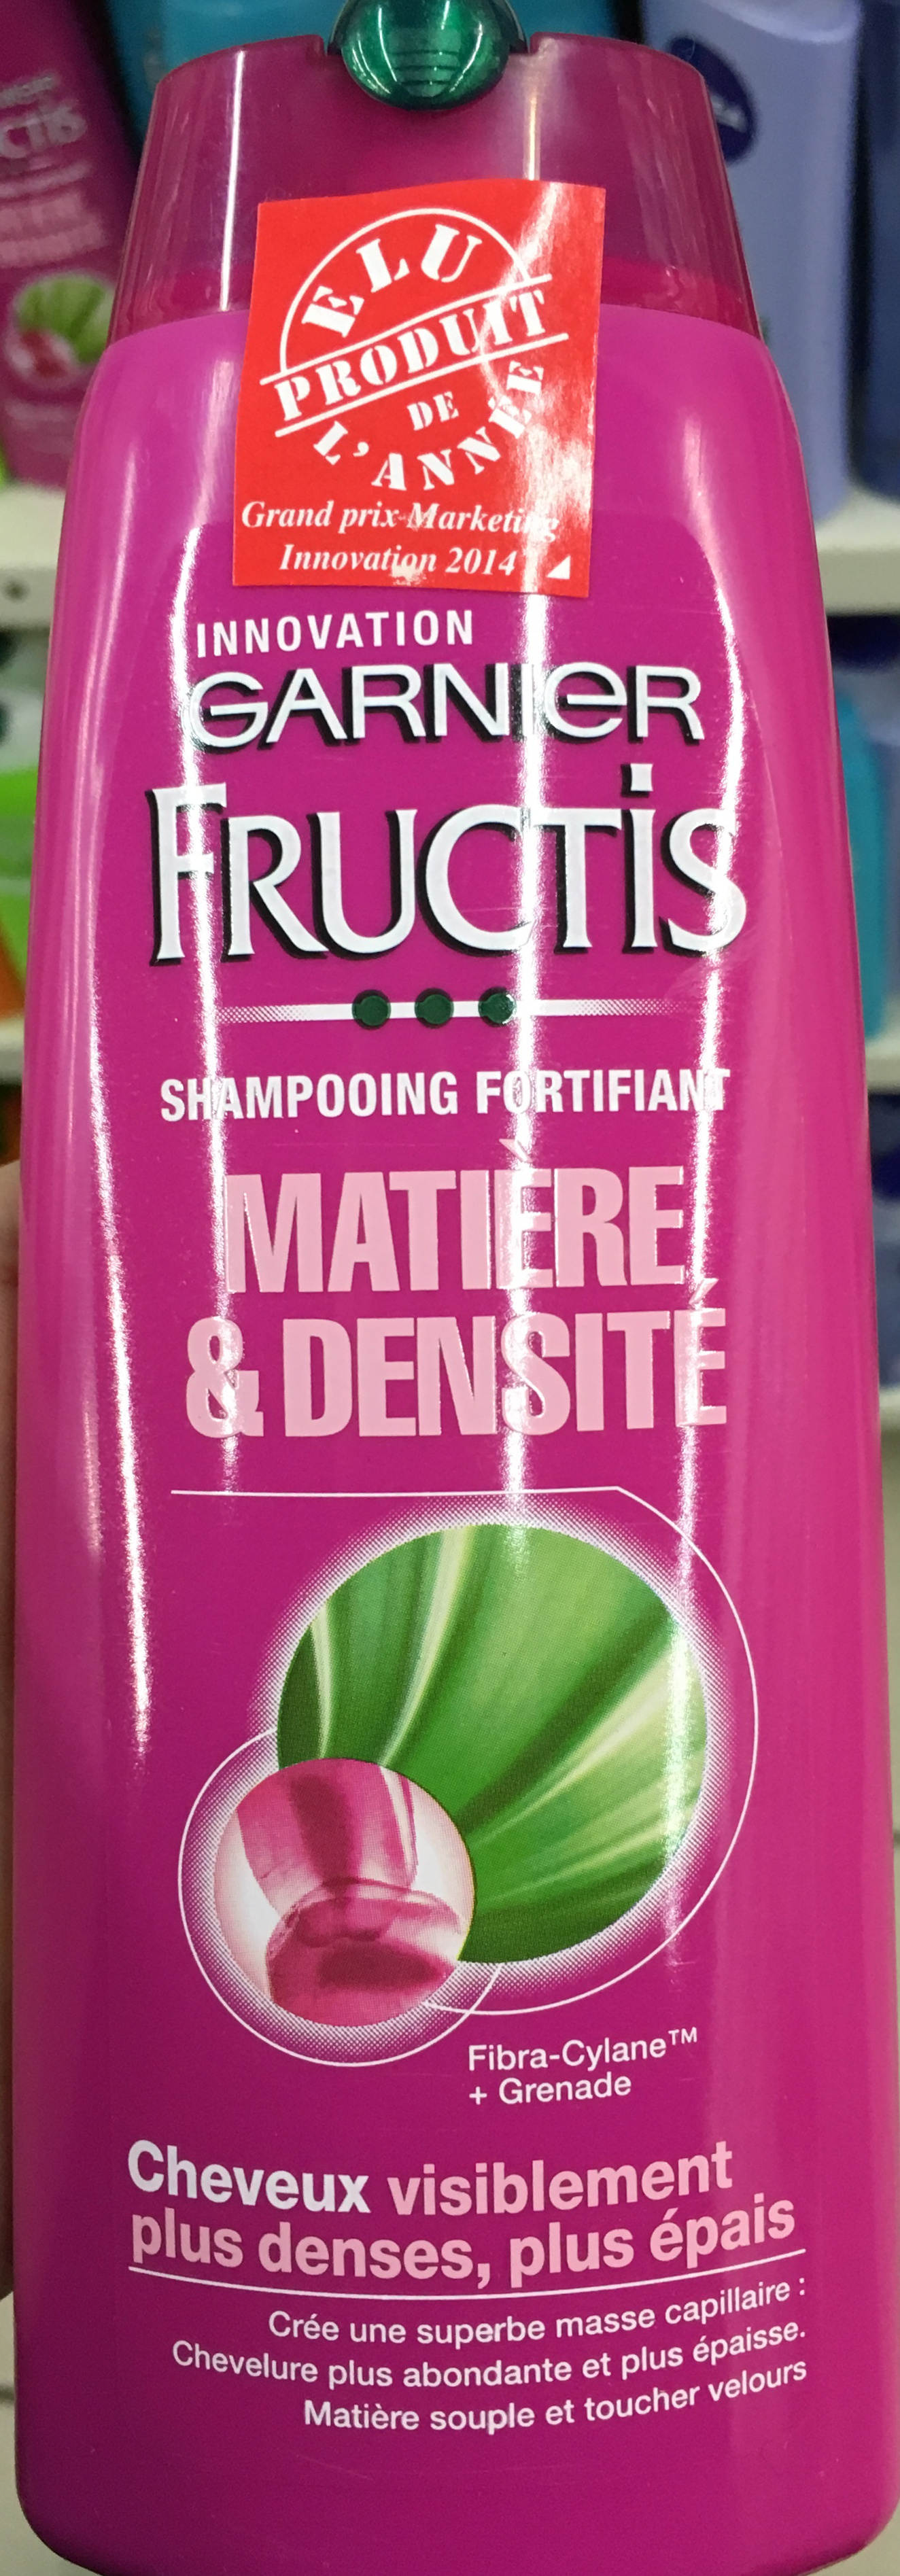 Fructis Shampooing fortifiant Matière & Densité - Product - fr